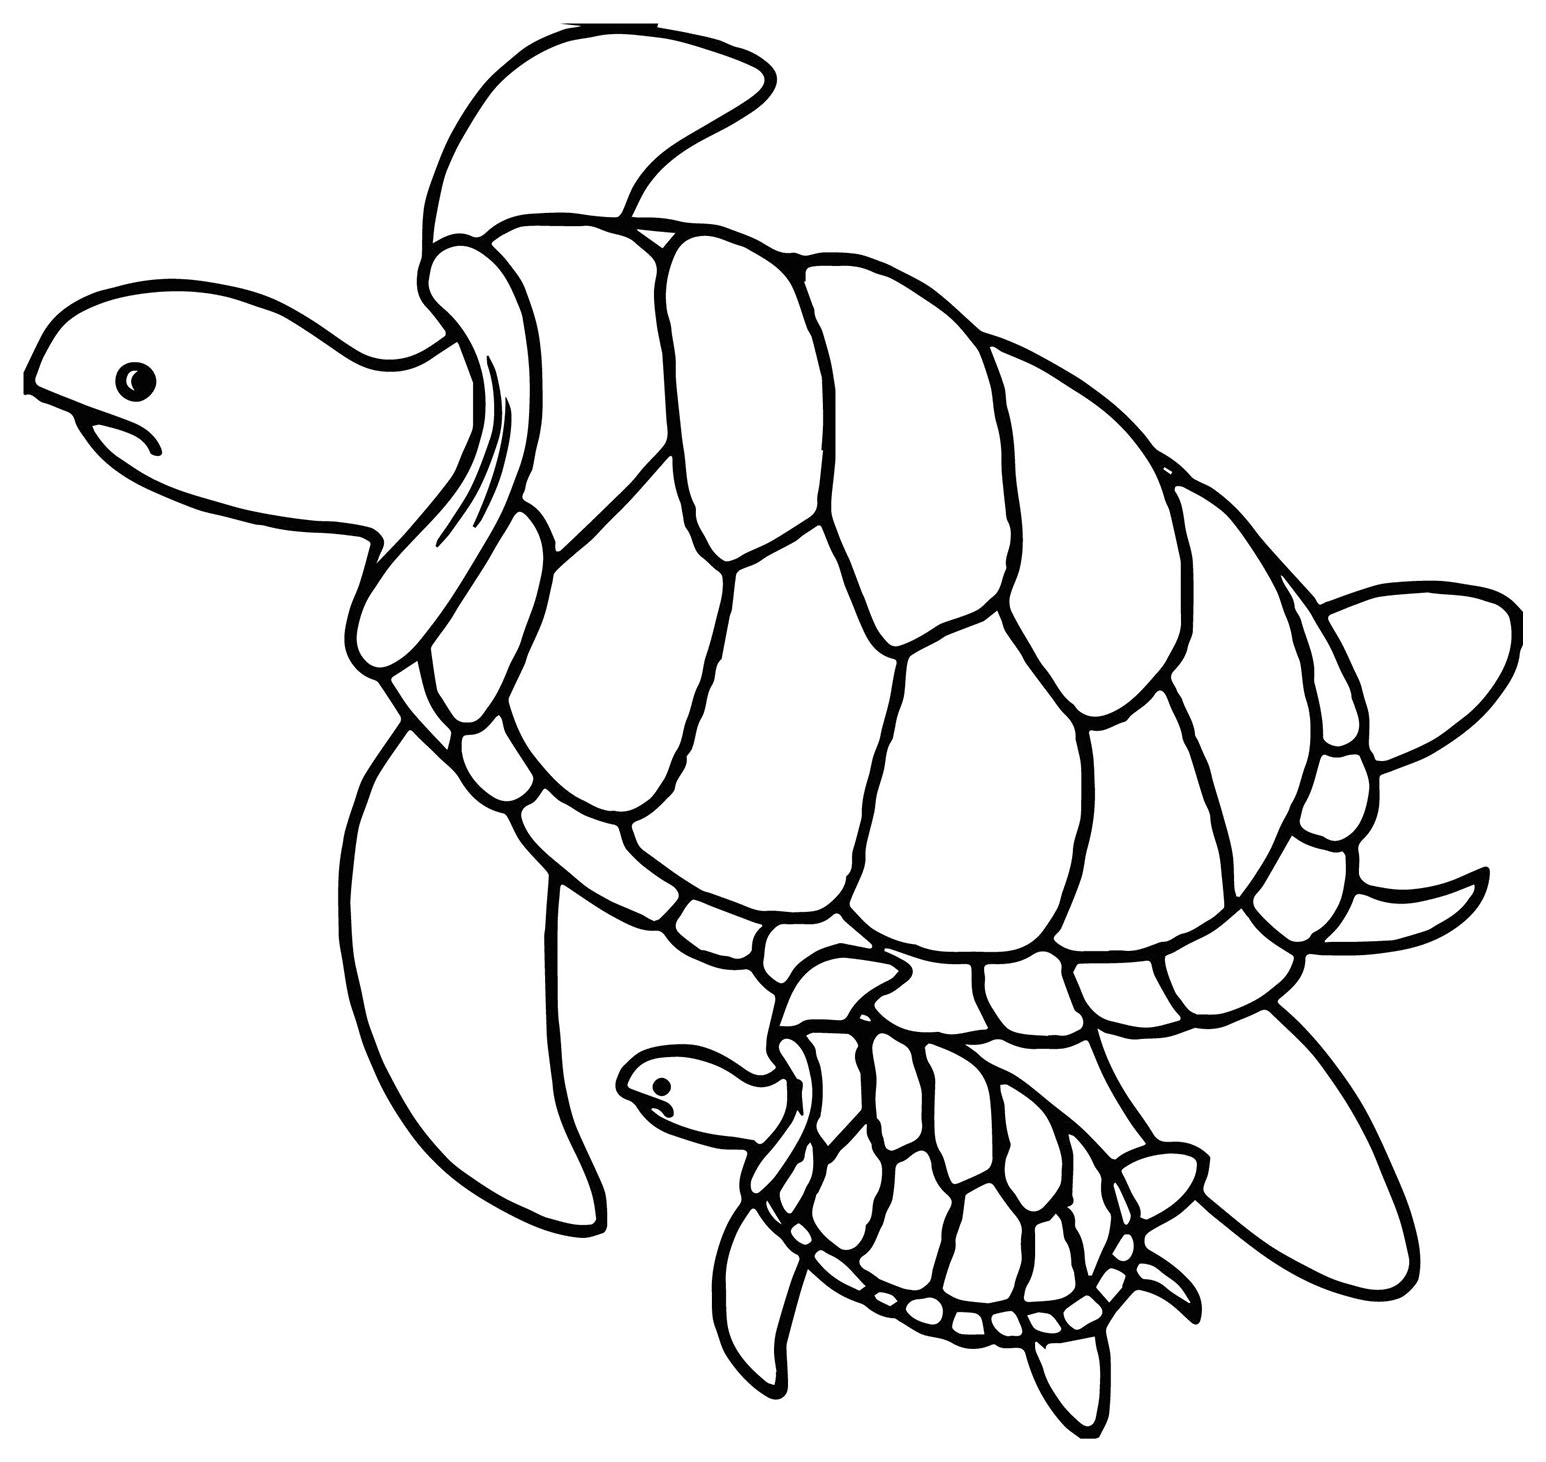 Turtles free to color for children - Turtles Kids Coloring ...